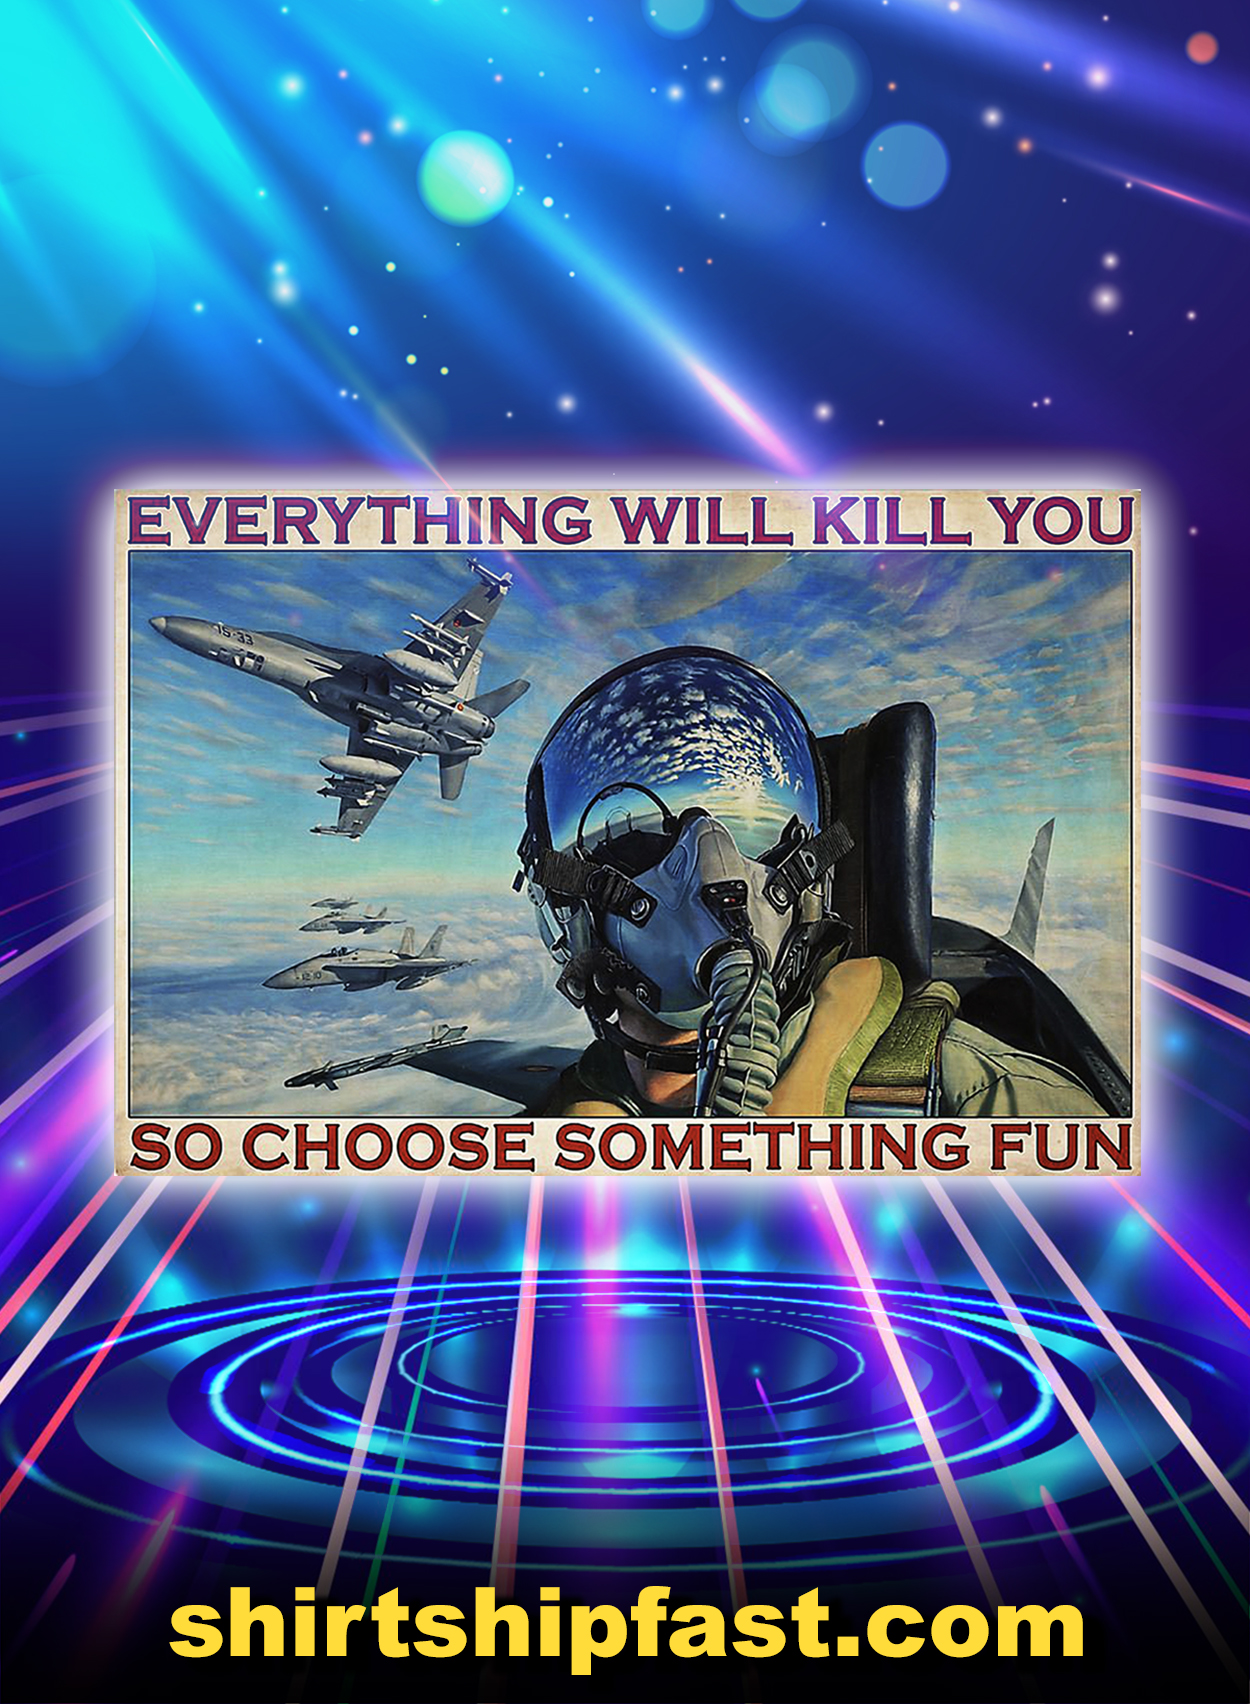 Fighter aircraft everything will kill you poster - A2